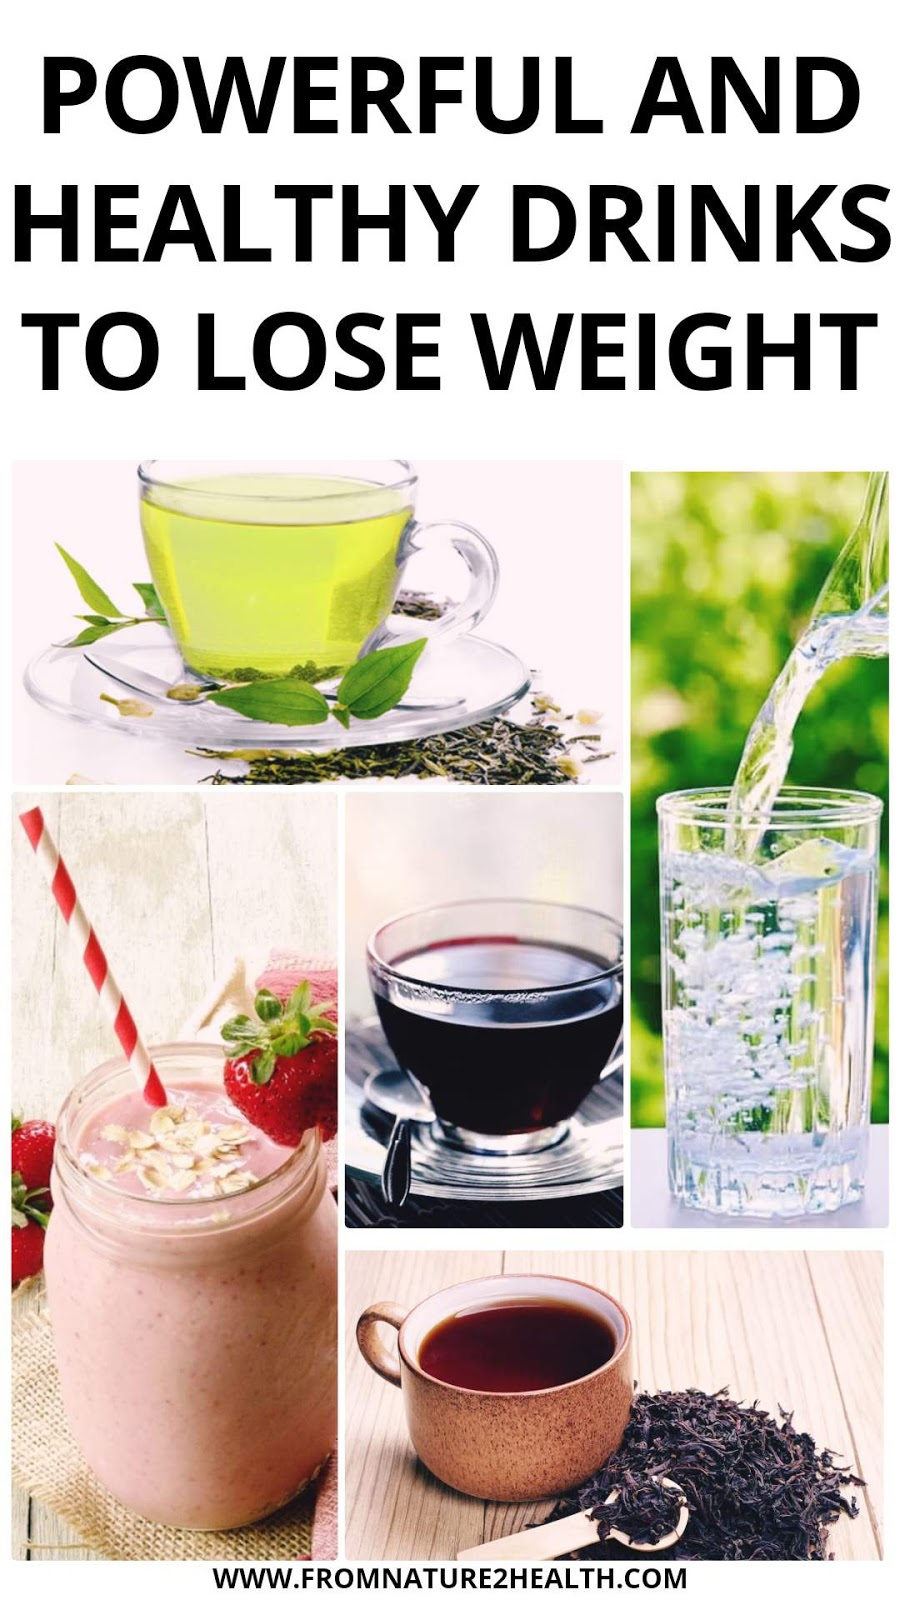 Powerful and Healthy Drinks To Lose Weight